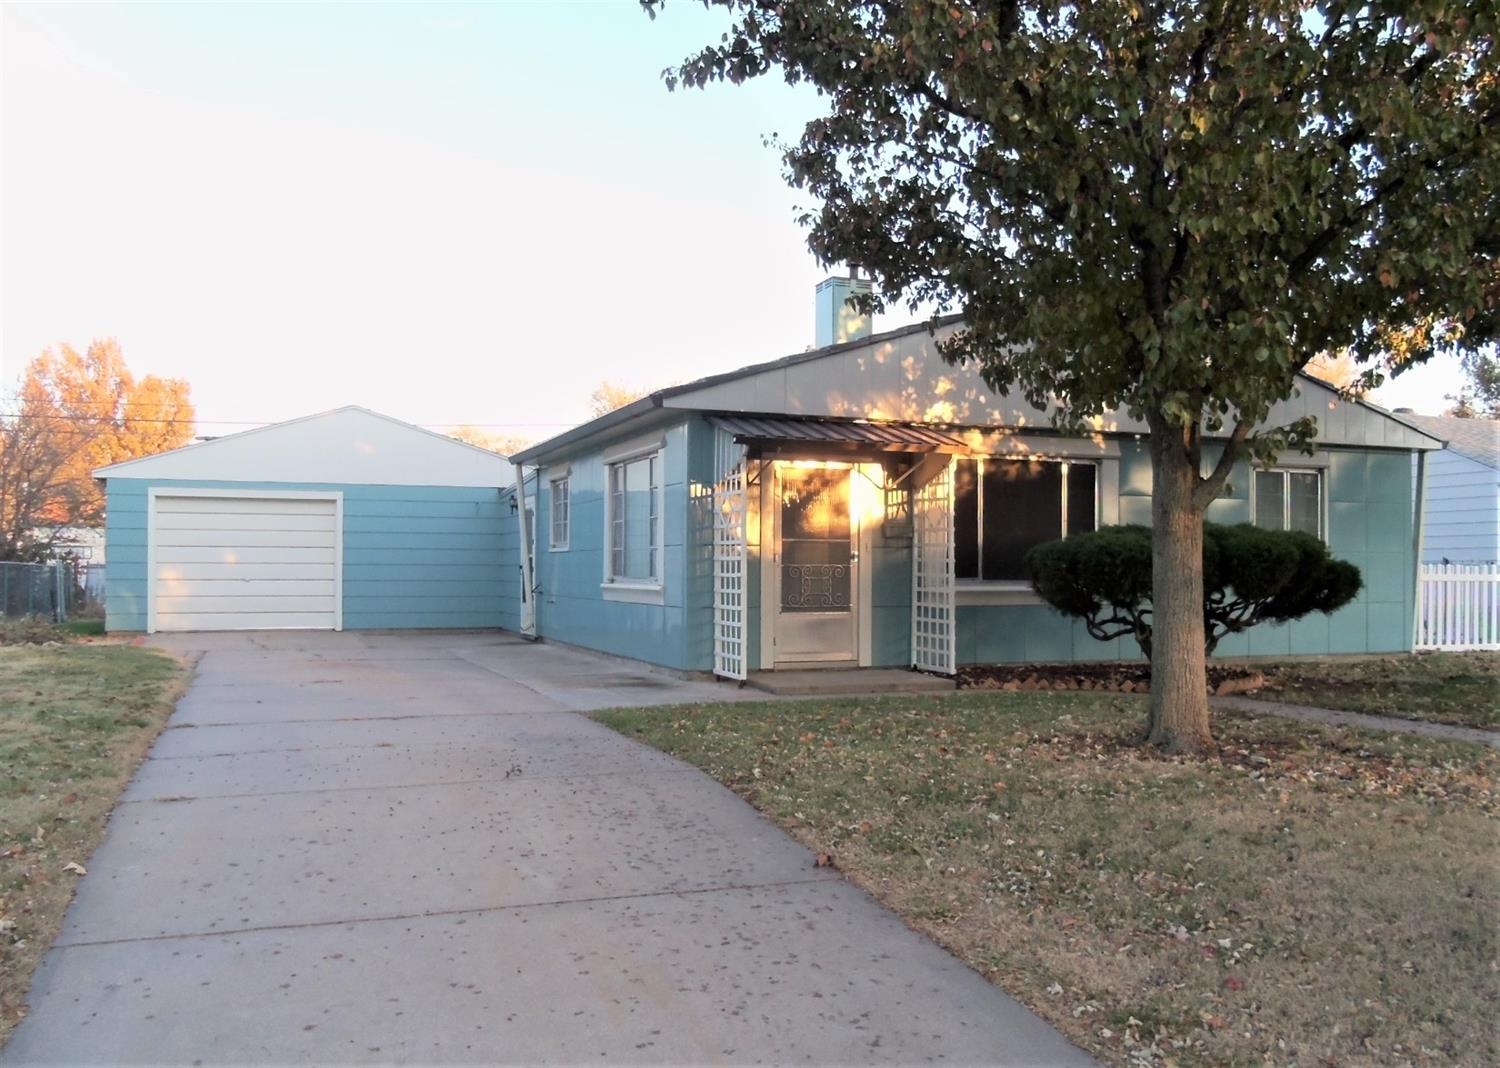 Why rent when you can own this very neat and clean two bedroom home that's move in ready?  Living room, kitchen with range and dining area, separate utility room, updated bath, spacious family room and attached garage and fenced yard.  Lustron home, garage has newer comp. shingles.